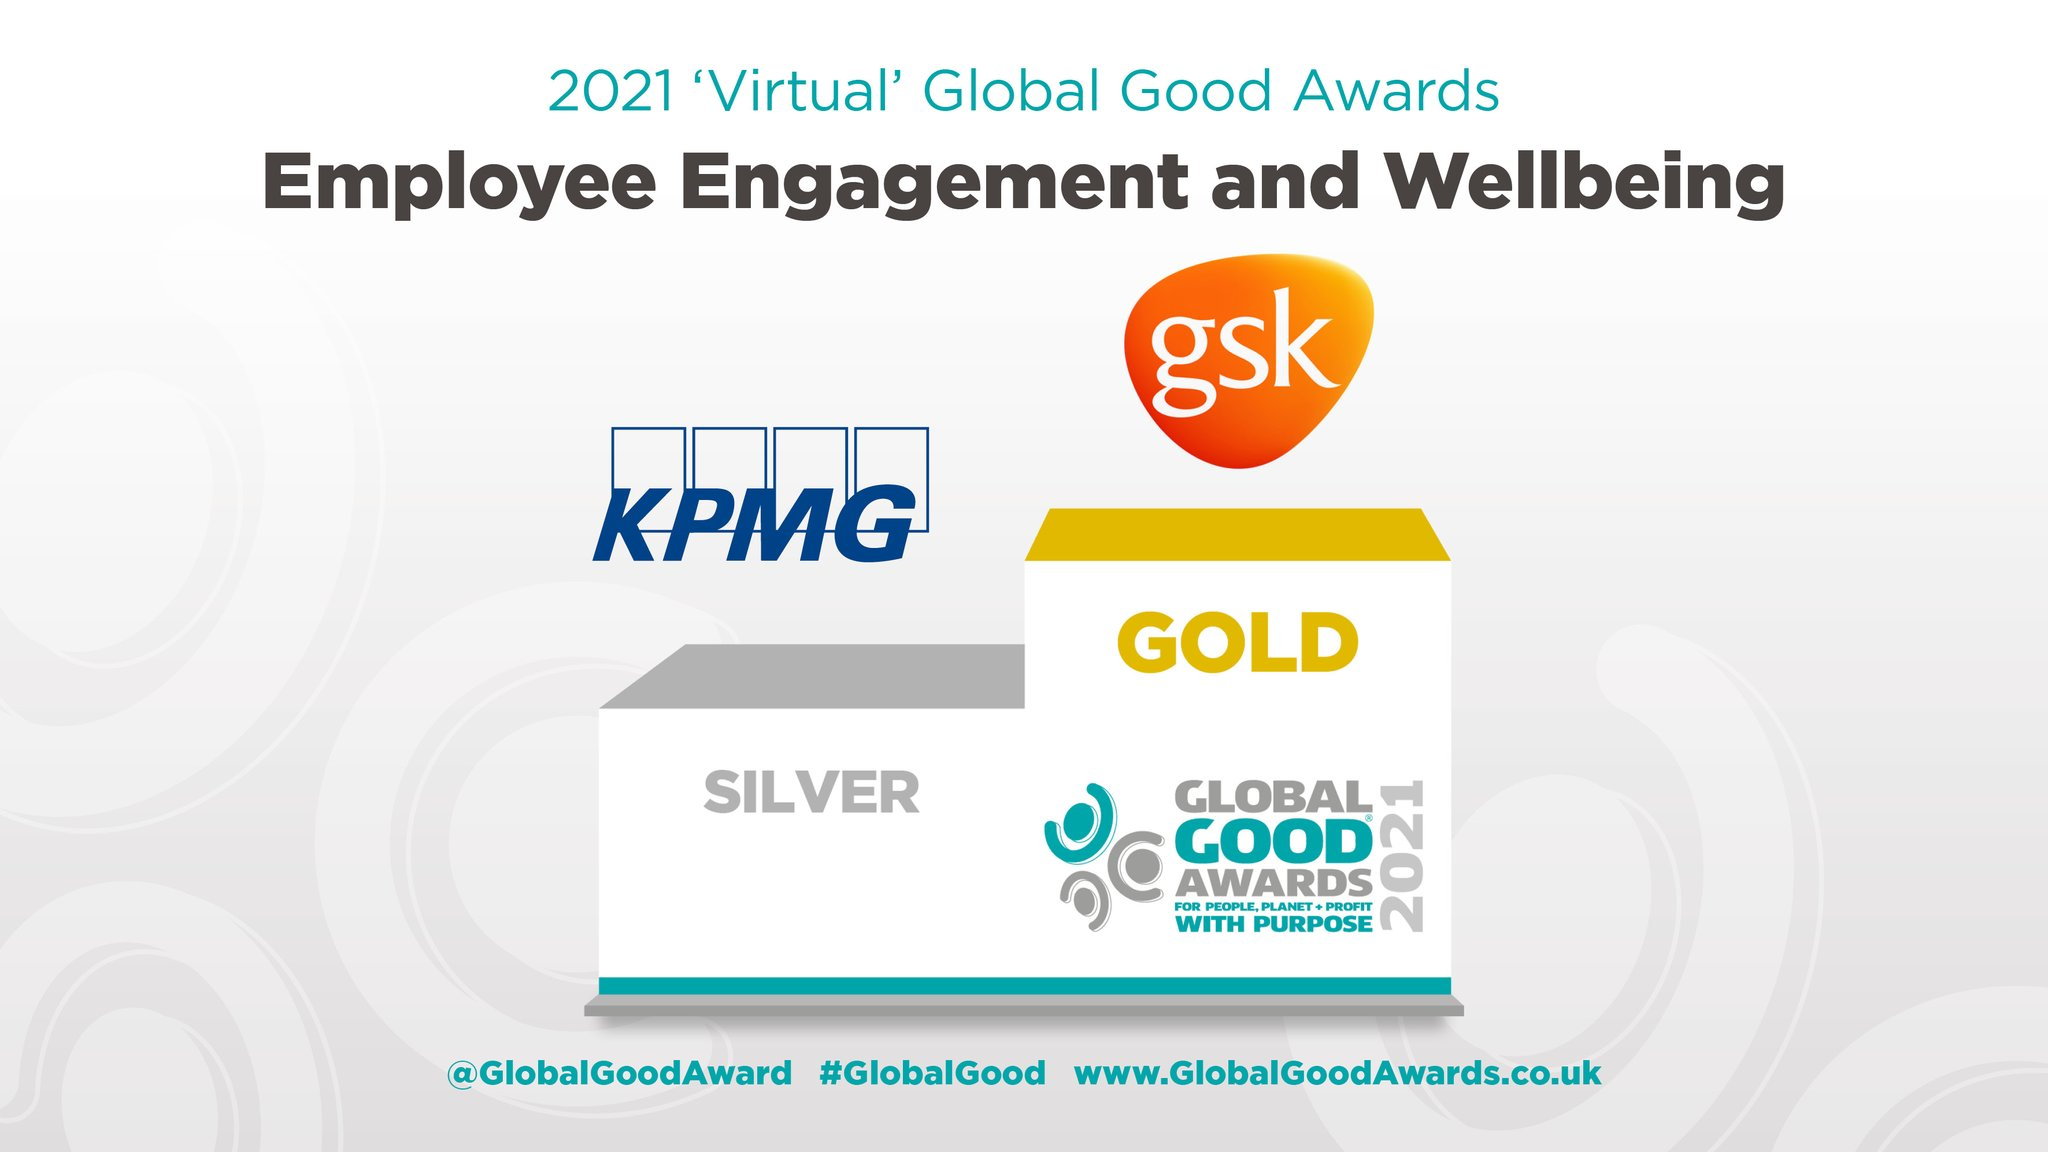 We're excited to have won 🏆 the @globalgoodaward in the Employee Engagement & Wellbeing category in recognition of our health and #wellbeing strategy which is helping support our employees around the world to #feelgood. Learn more: https://t.co/0WZKndaGiR #GlobalGood https://t.co/WyYAybWoWe